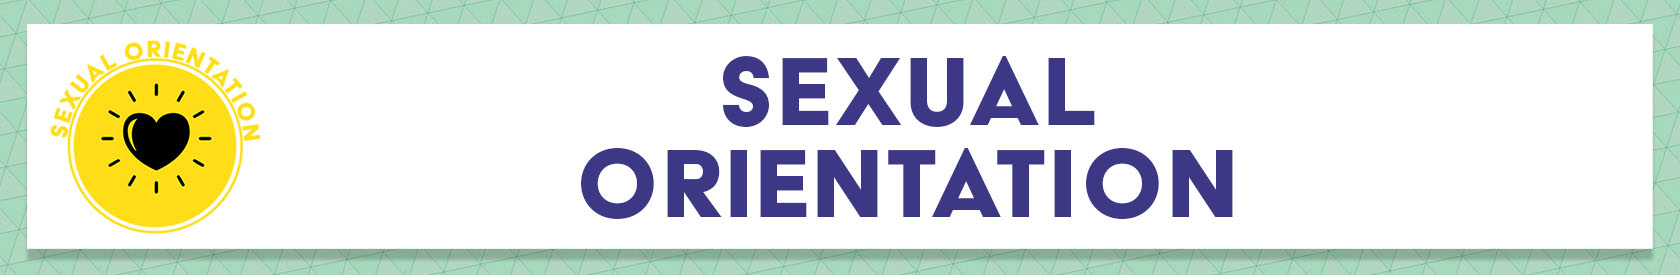 Resources: Sexual Orientation